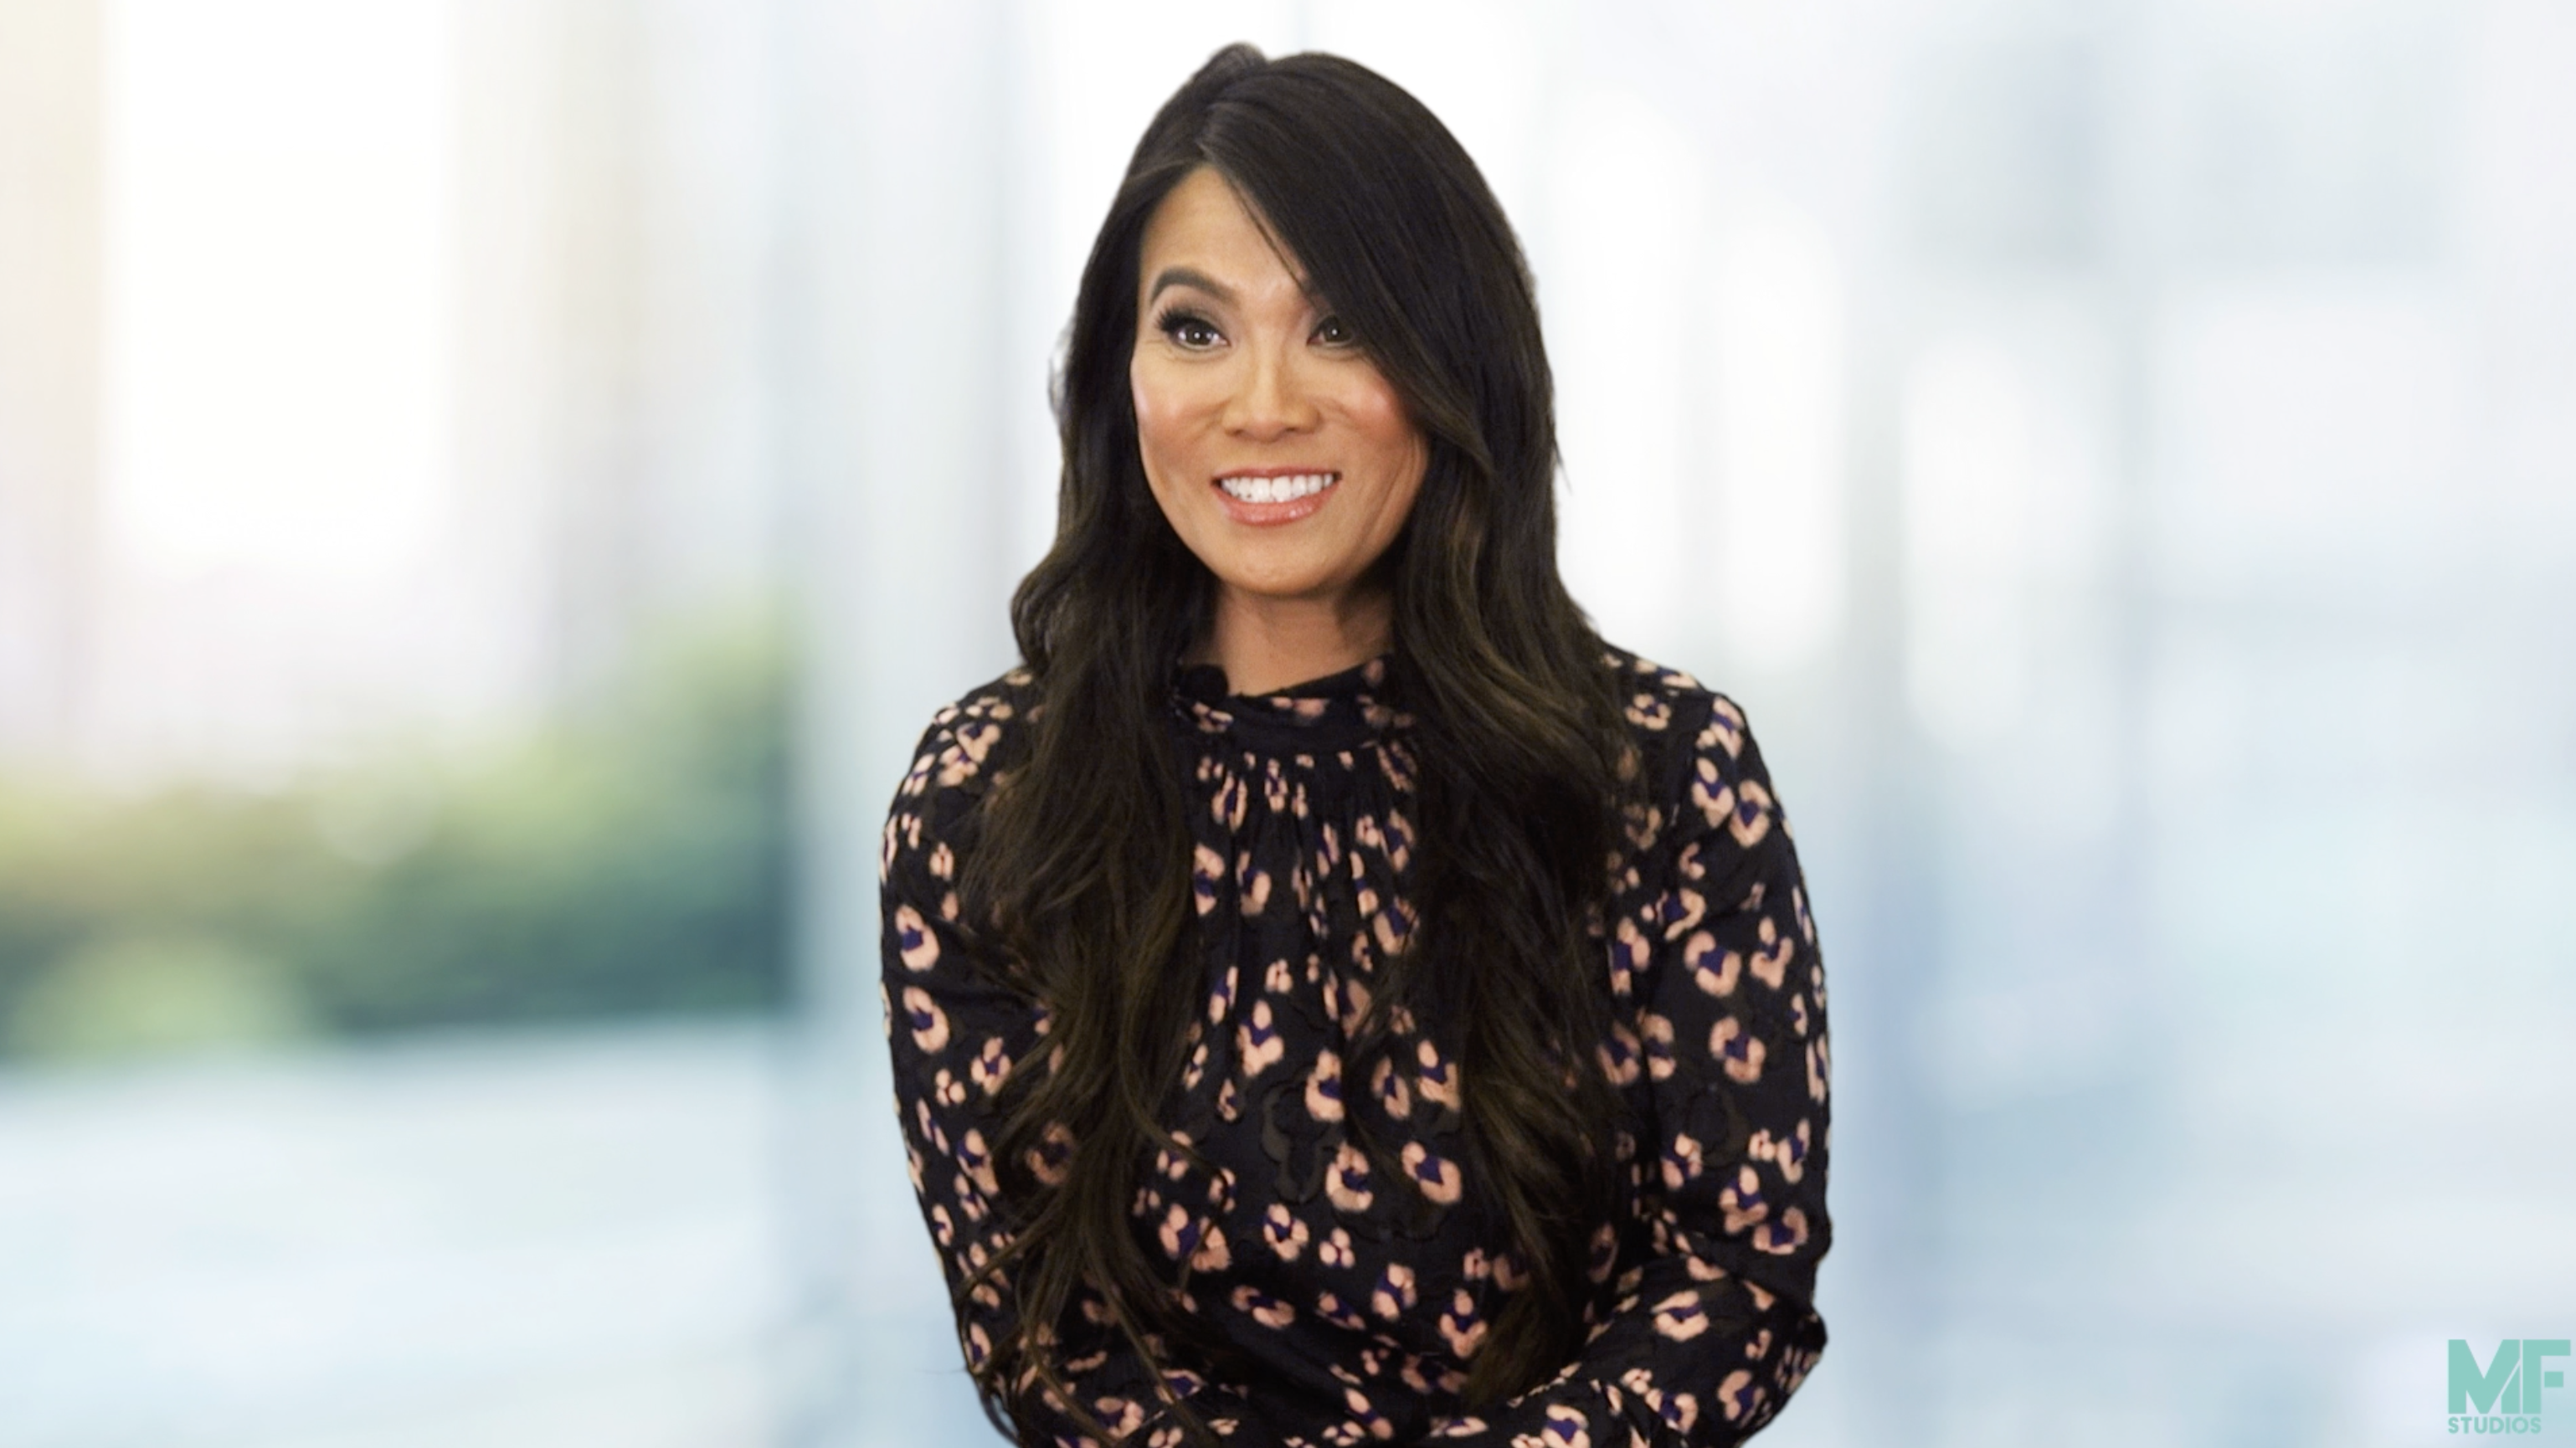 12 Dermatology Terms Defined By Dr Pimple Popper Mental Floss